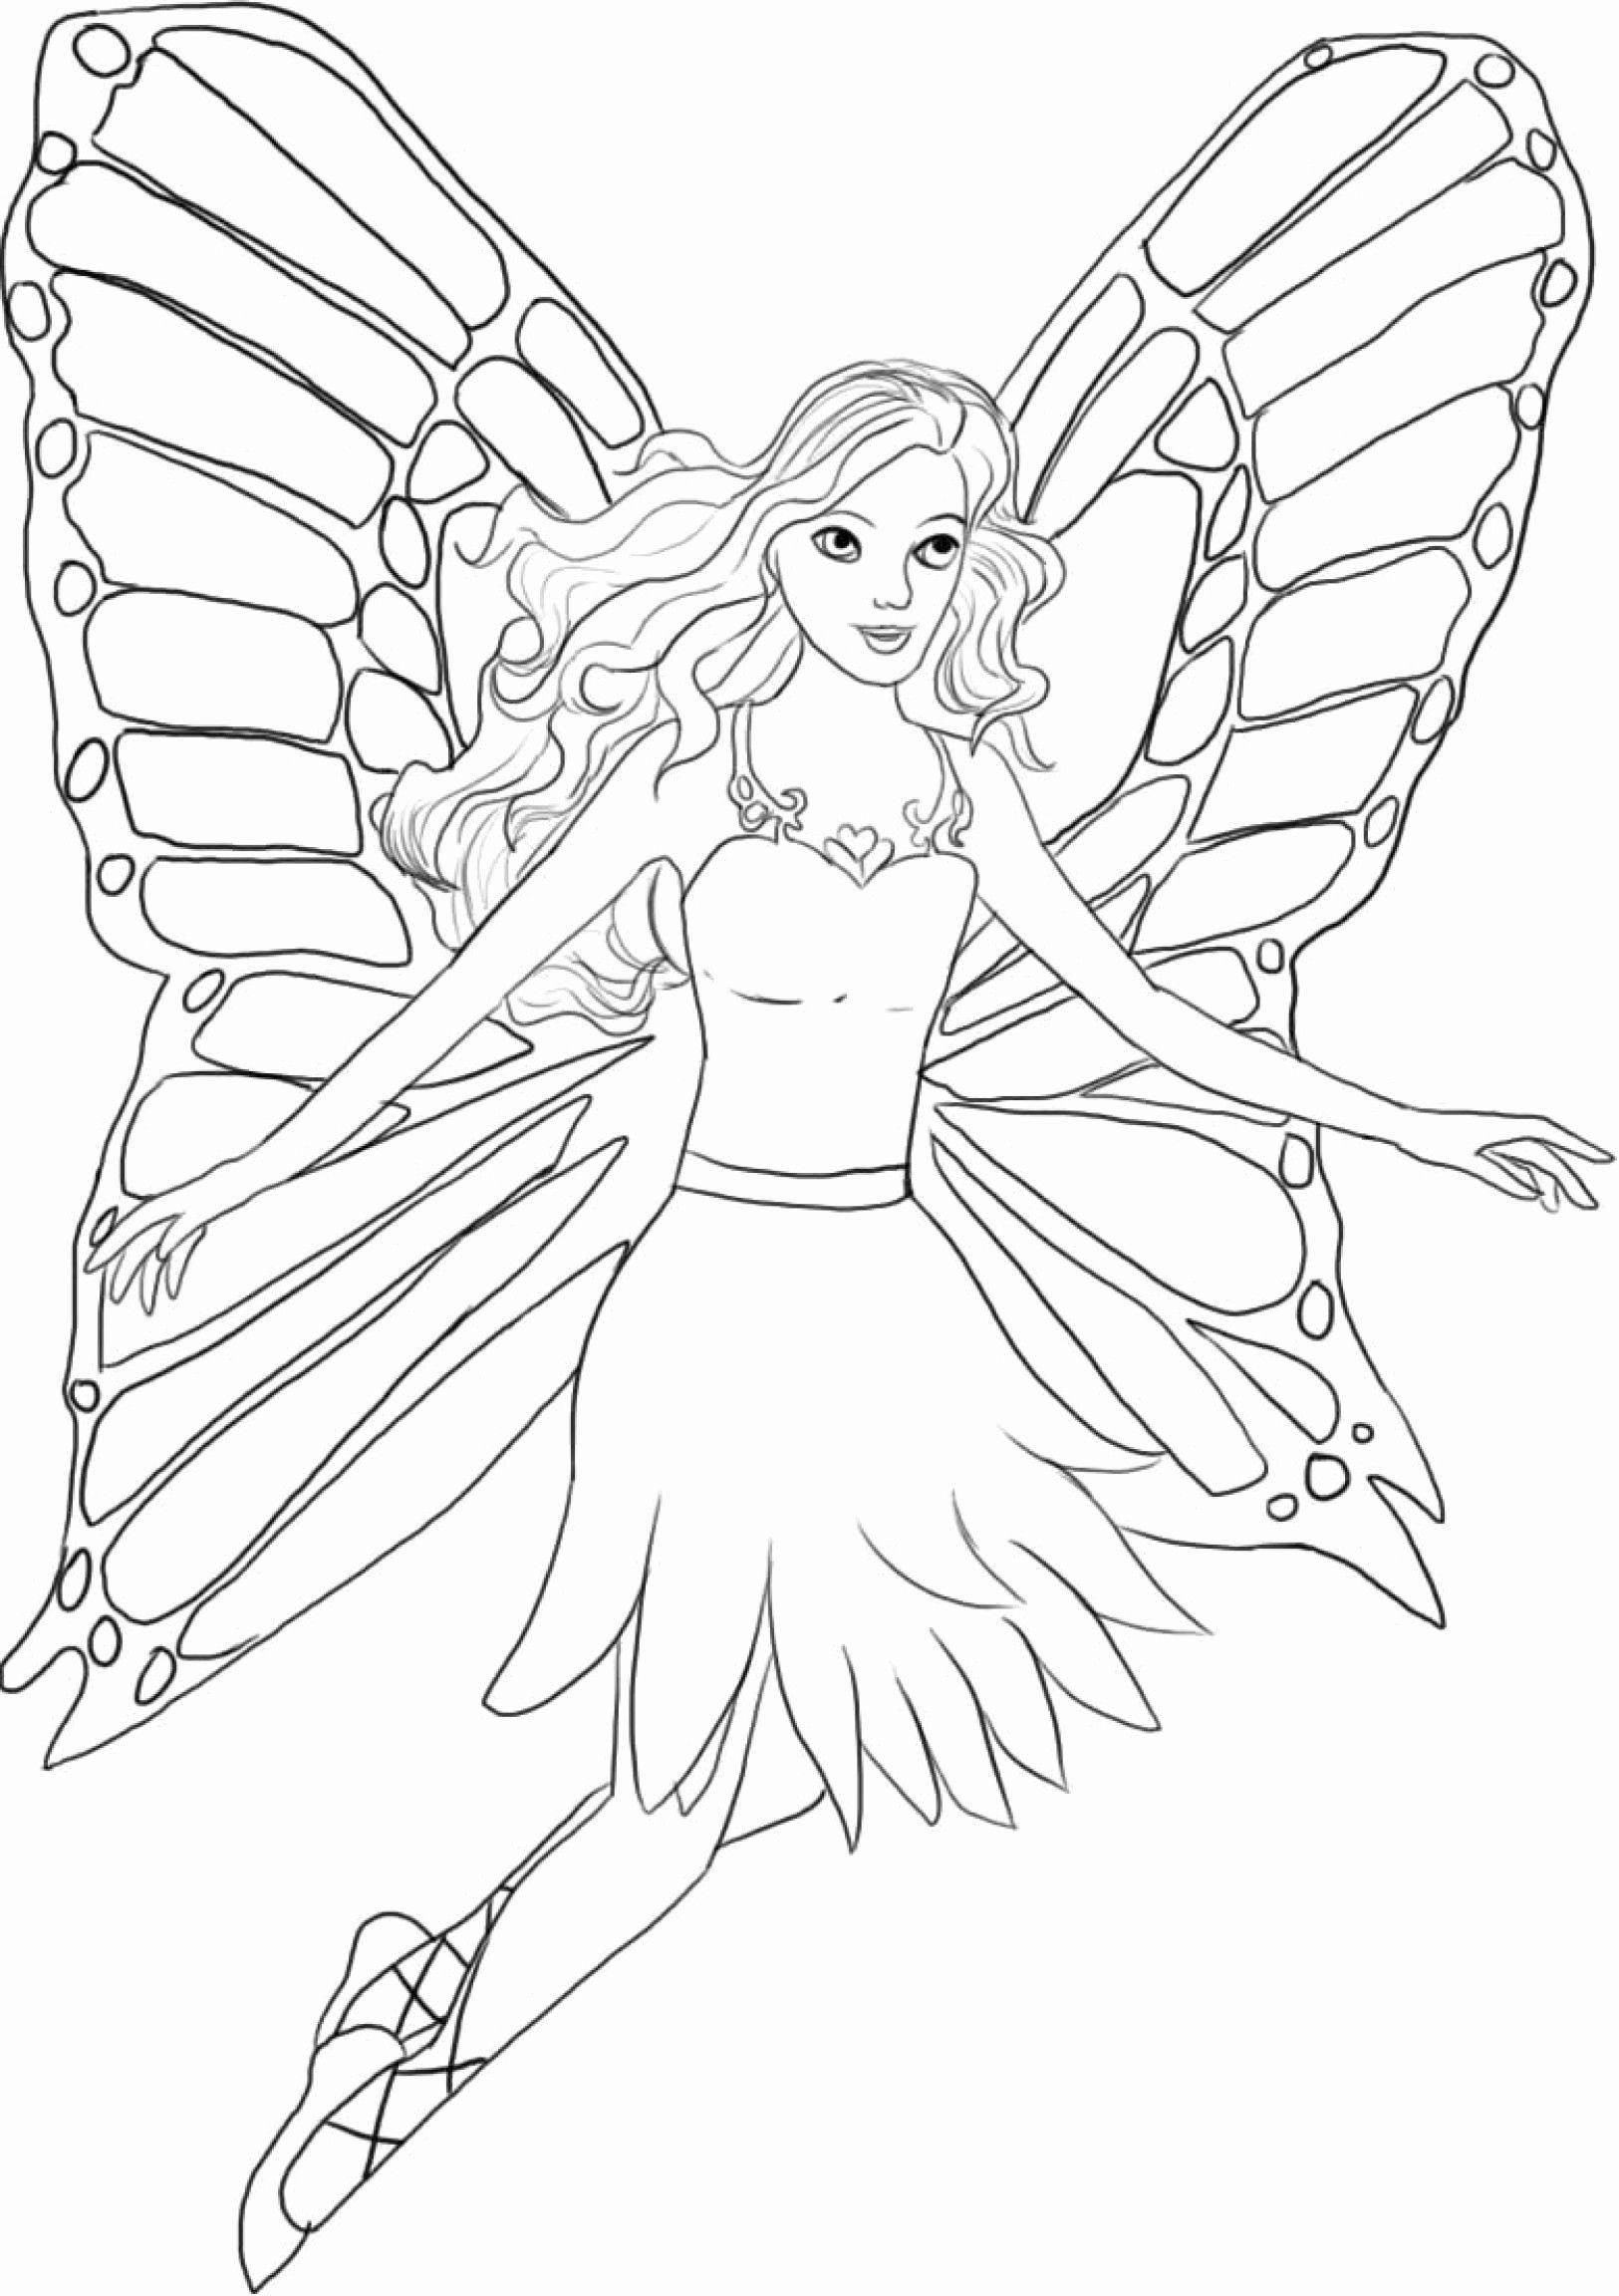 Fairy Princess Coloring Pages Through The Thousands Of Images On The Internet Concerning Fairy Princess Coloring Pages Buku Mewarnai Tutorial Boneka Warna